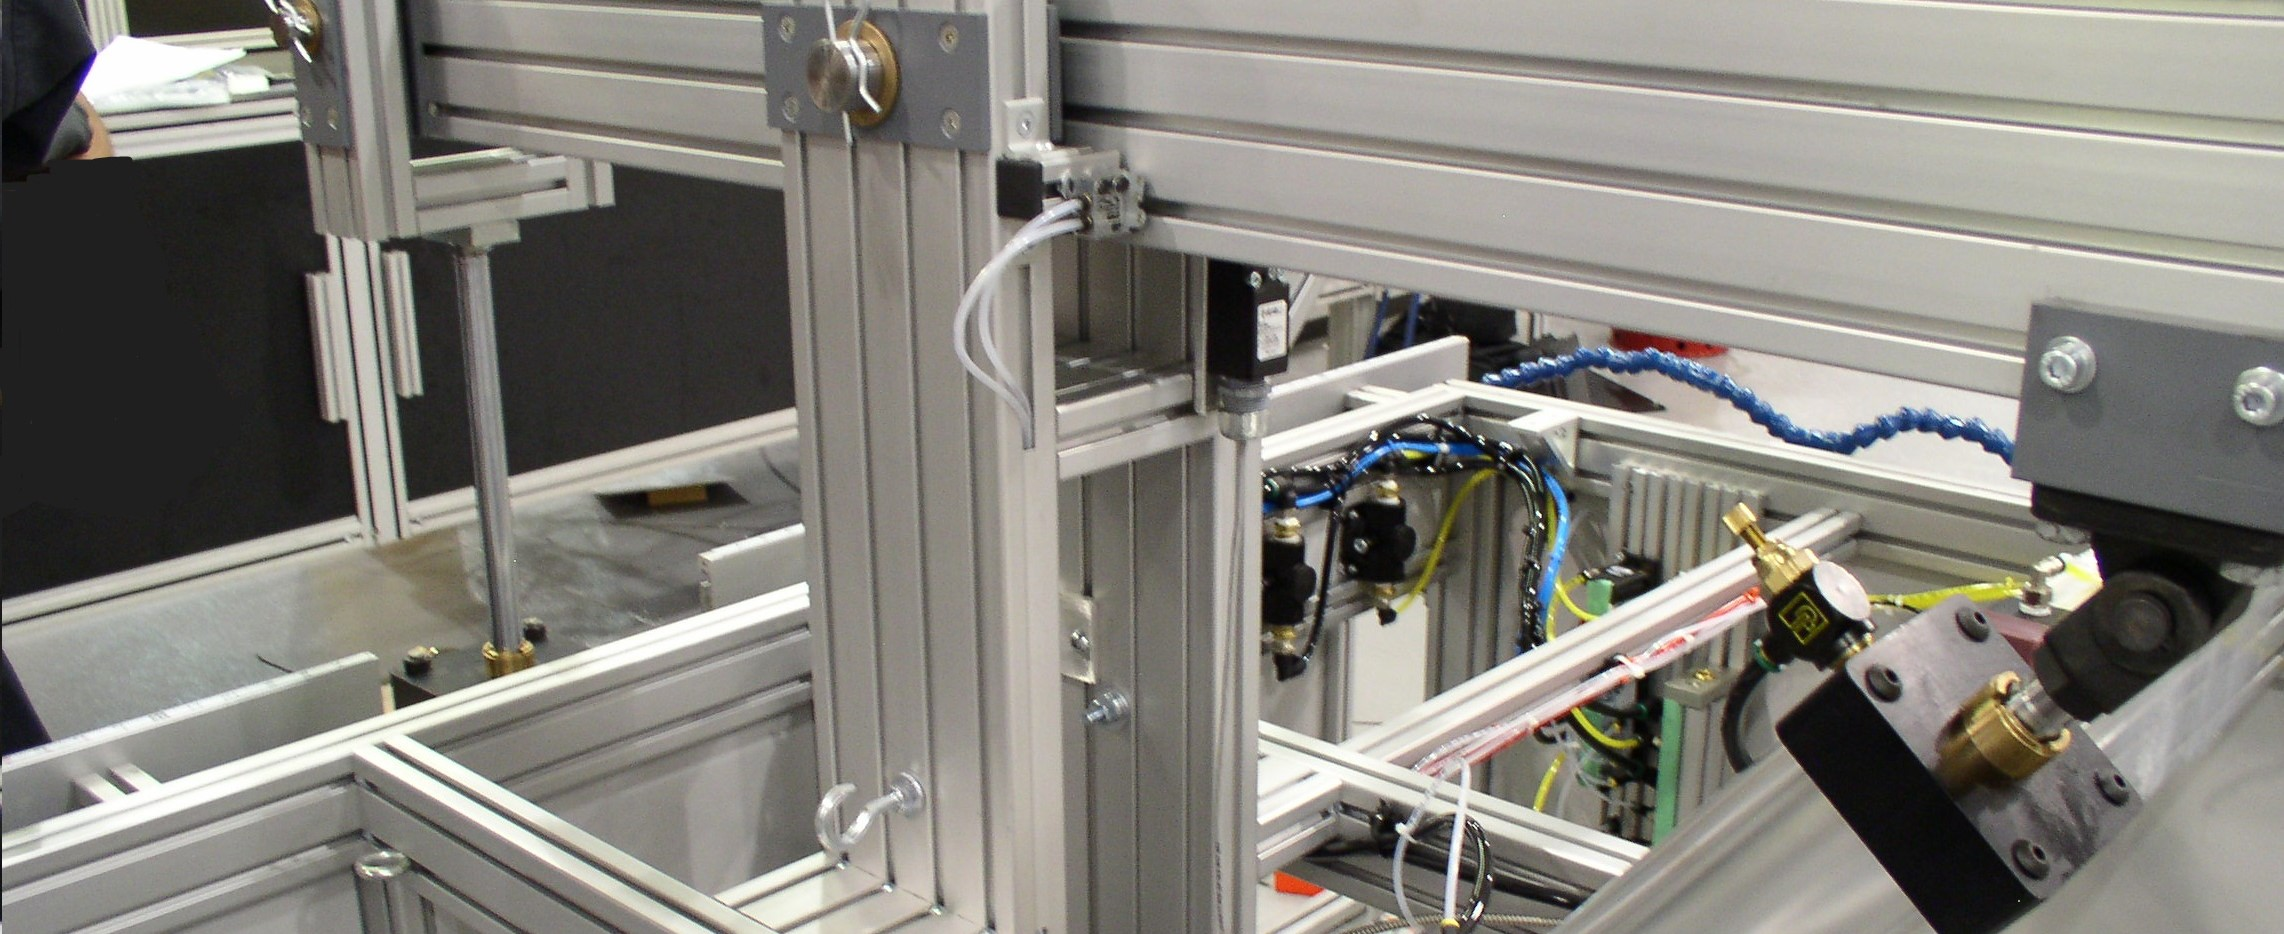 Automated Motion And Vision Systems Sidac Basic Operation Working With Parker Ips Extruded Aluminum The Designers Technicians At Sidacs Design Center Will Analyse Initial Requirements Produce